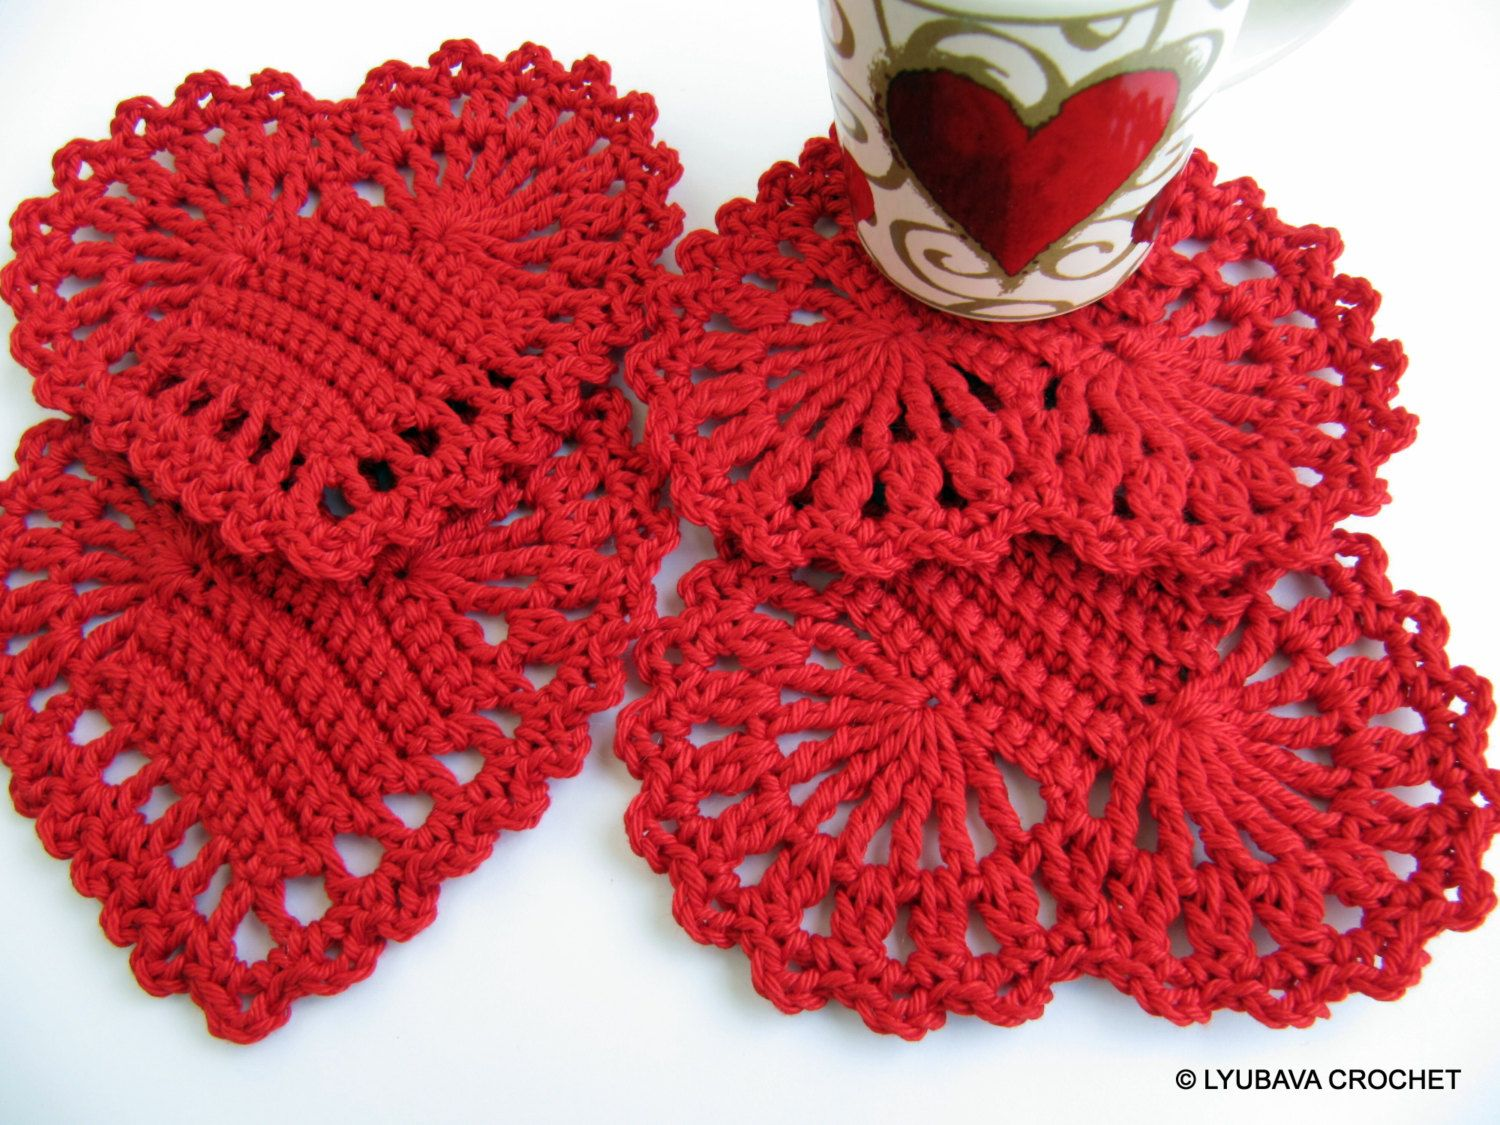 Crochet Heart Pattern Instant Download Valentines Day Crochet Gift